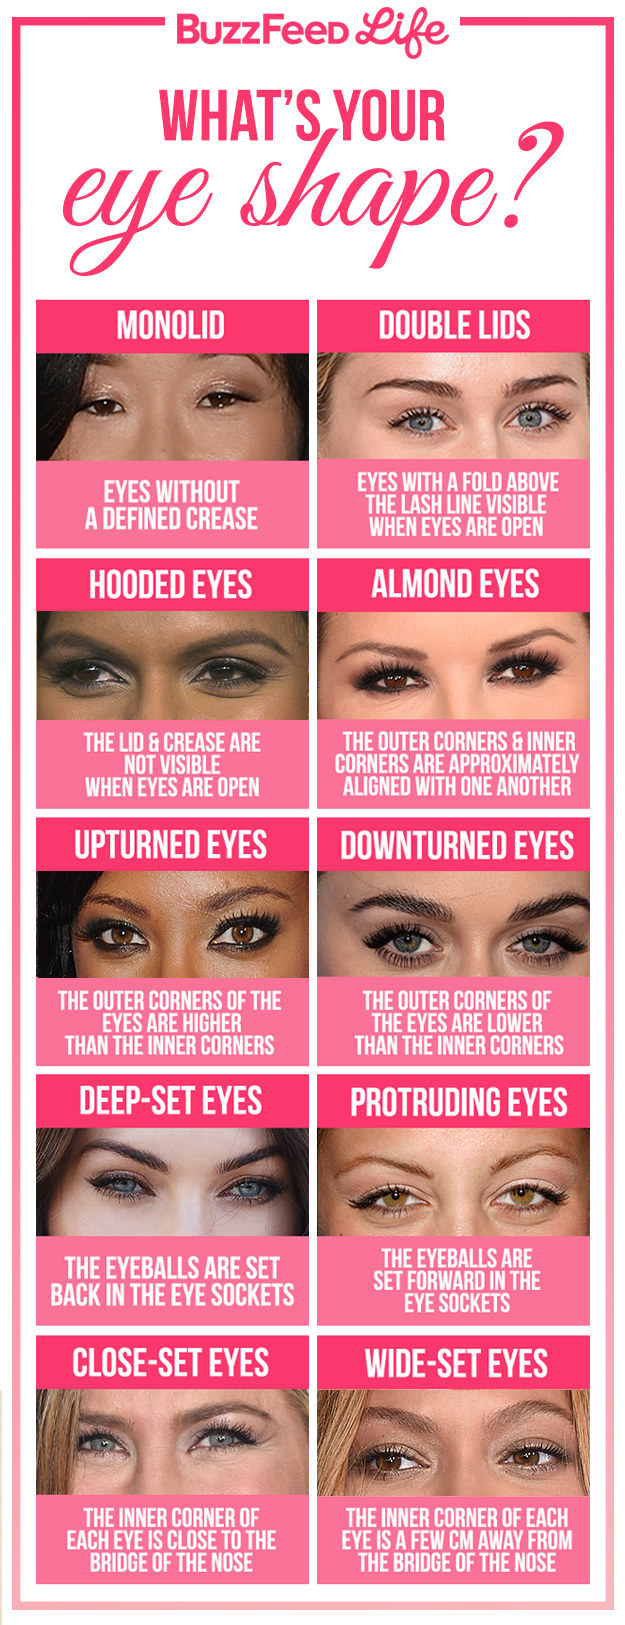 Buzzfeed Buzz Tagged Eye Makeup